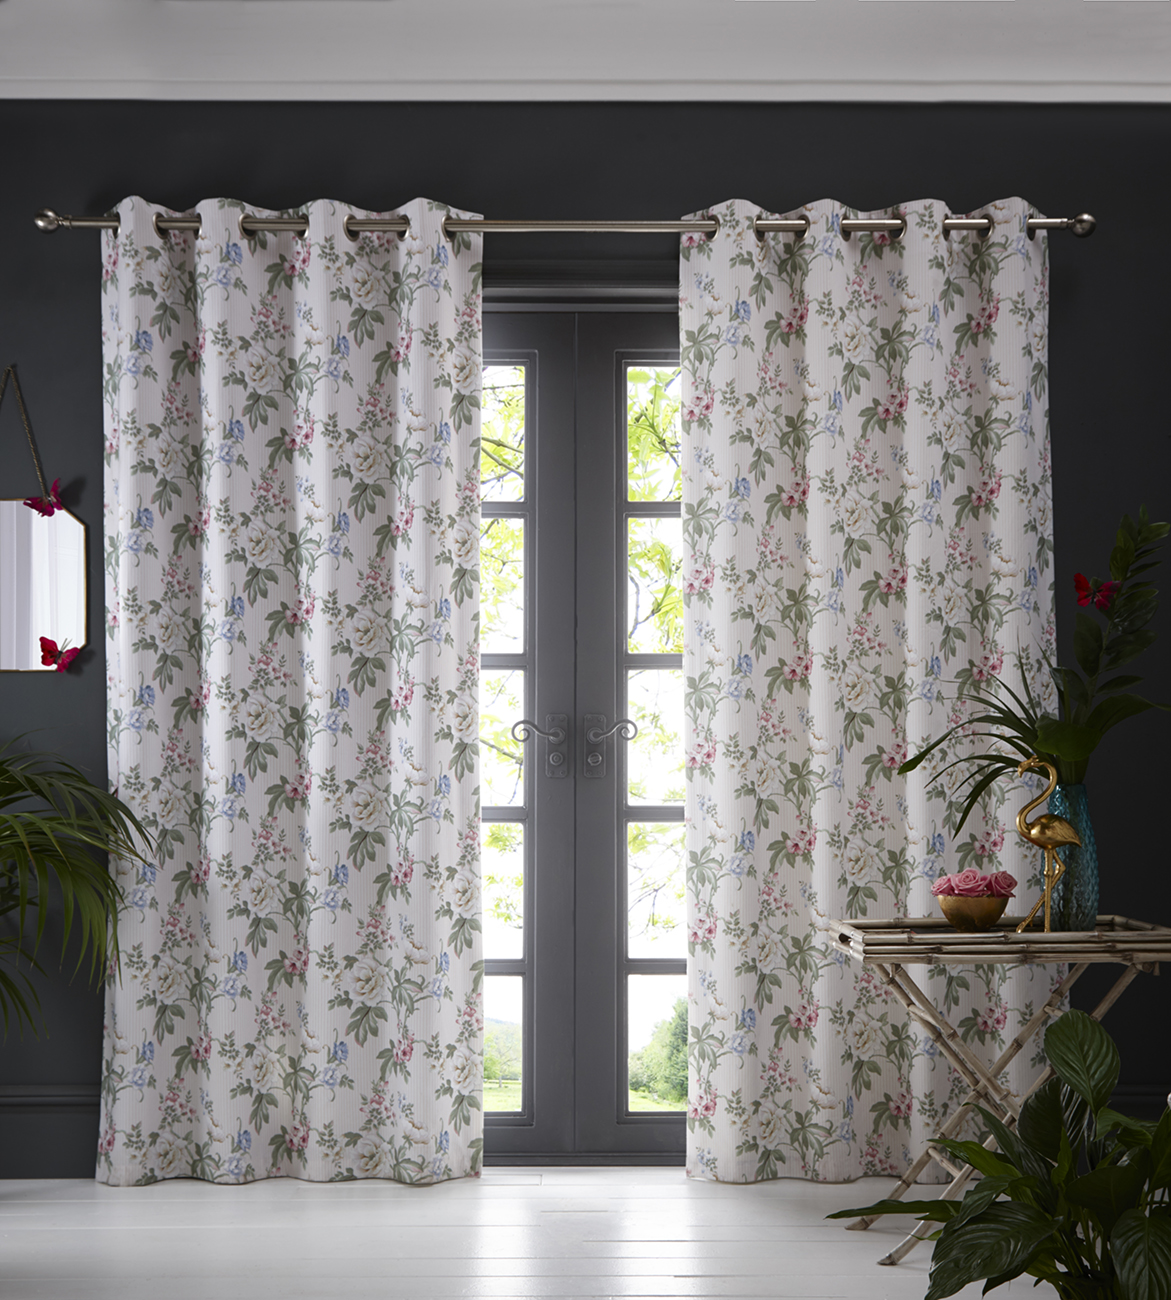 Oasis Bailey Curtains Mineral Curtains At Home